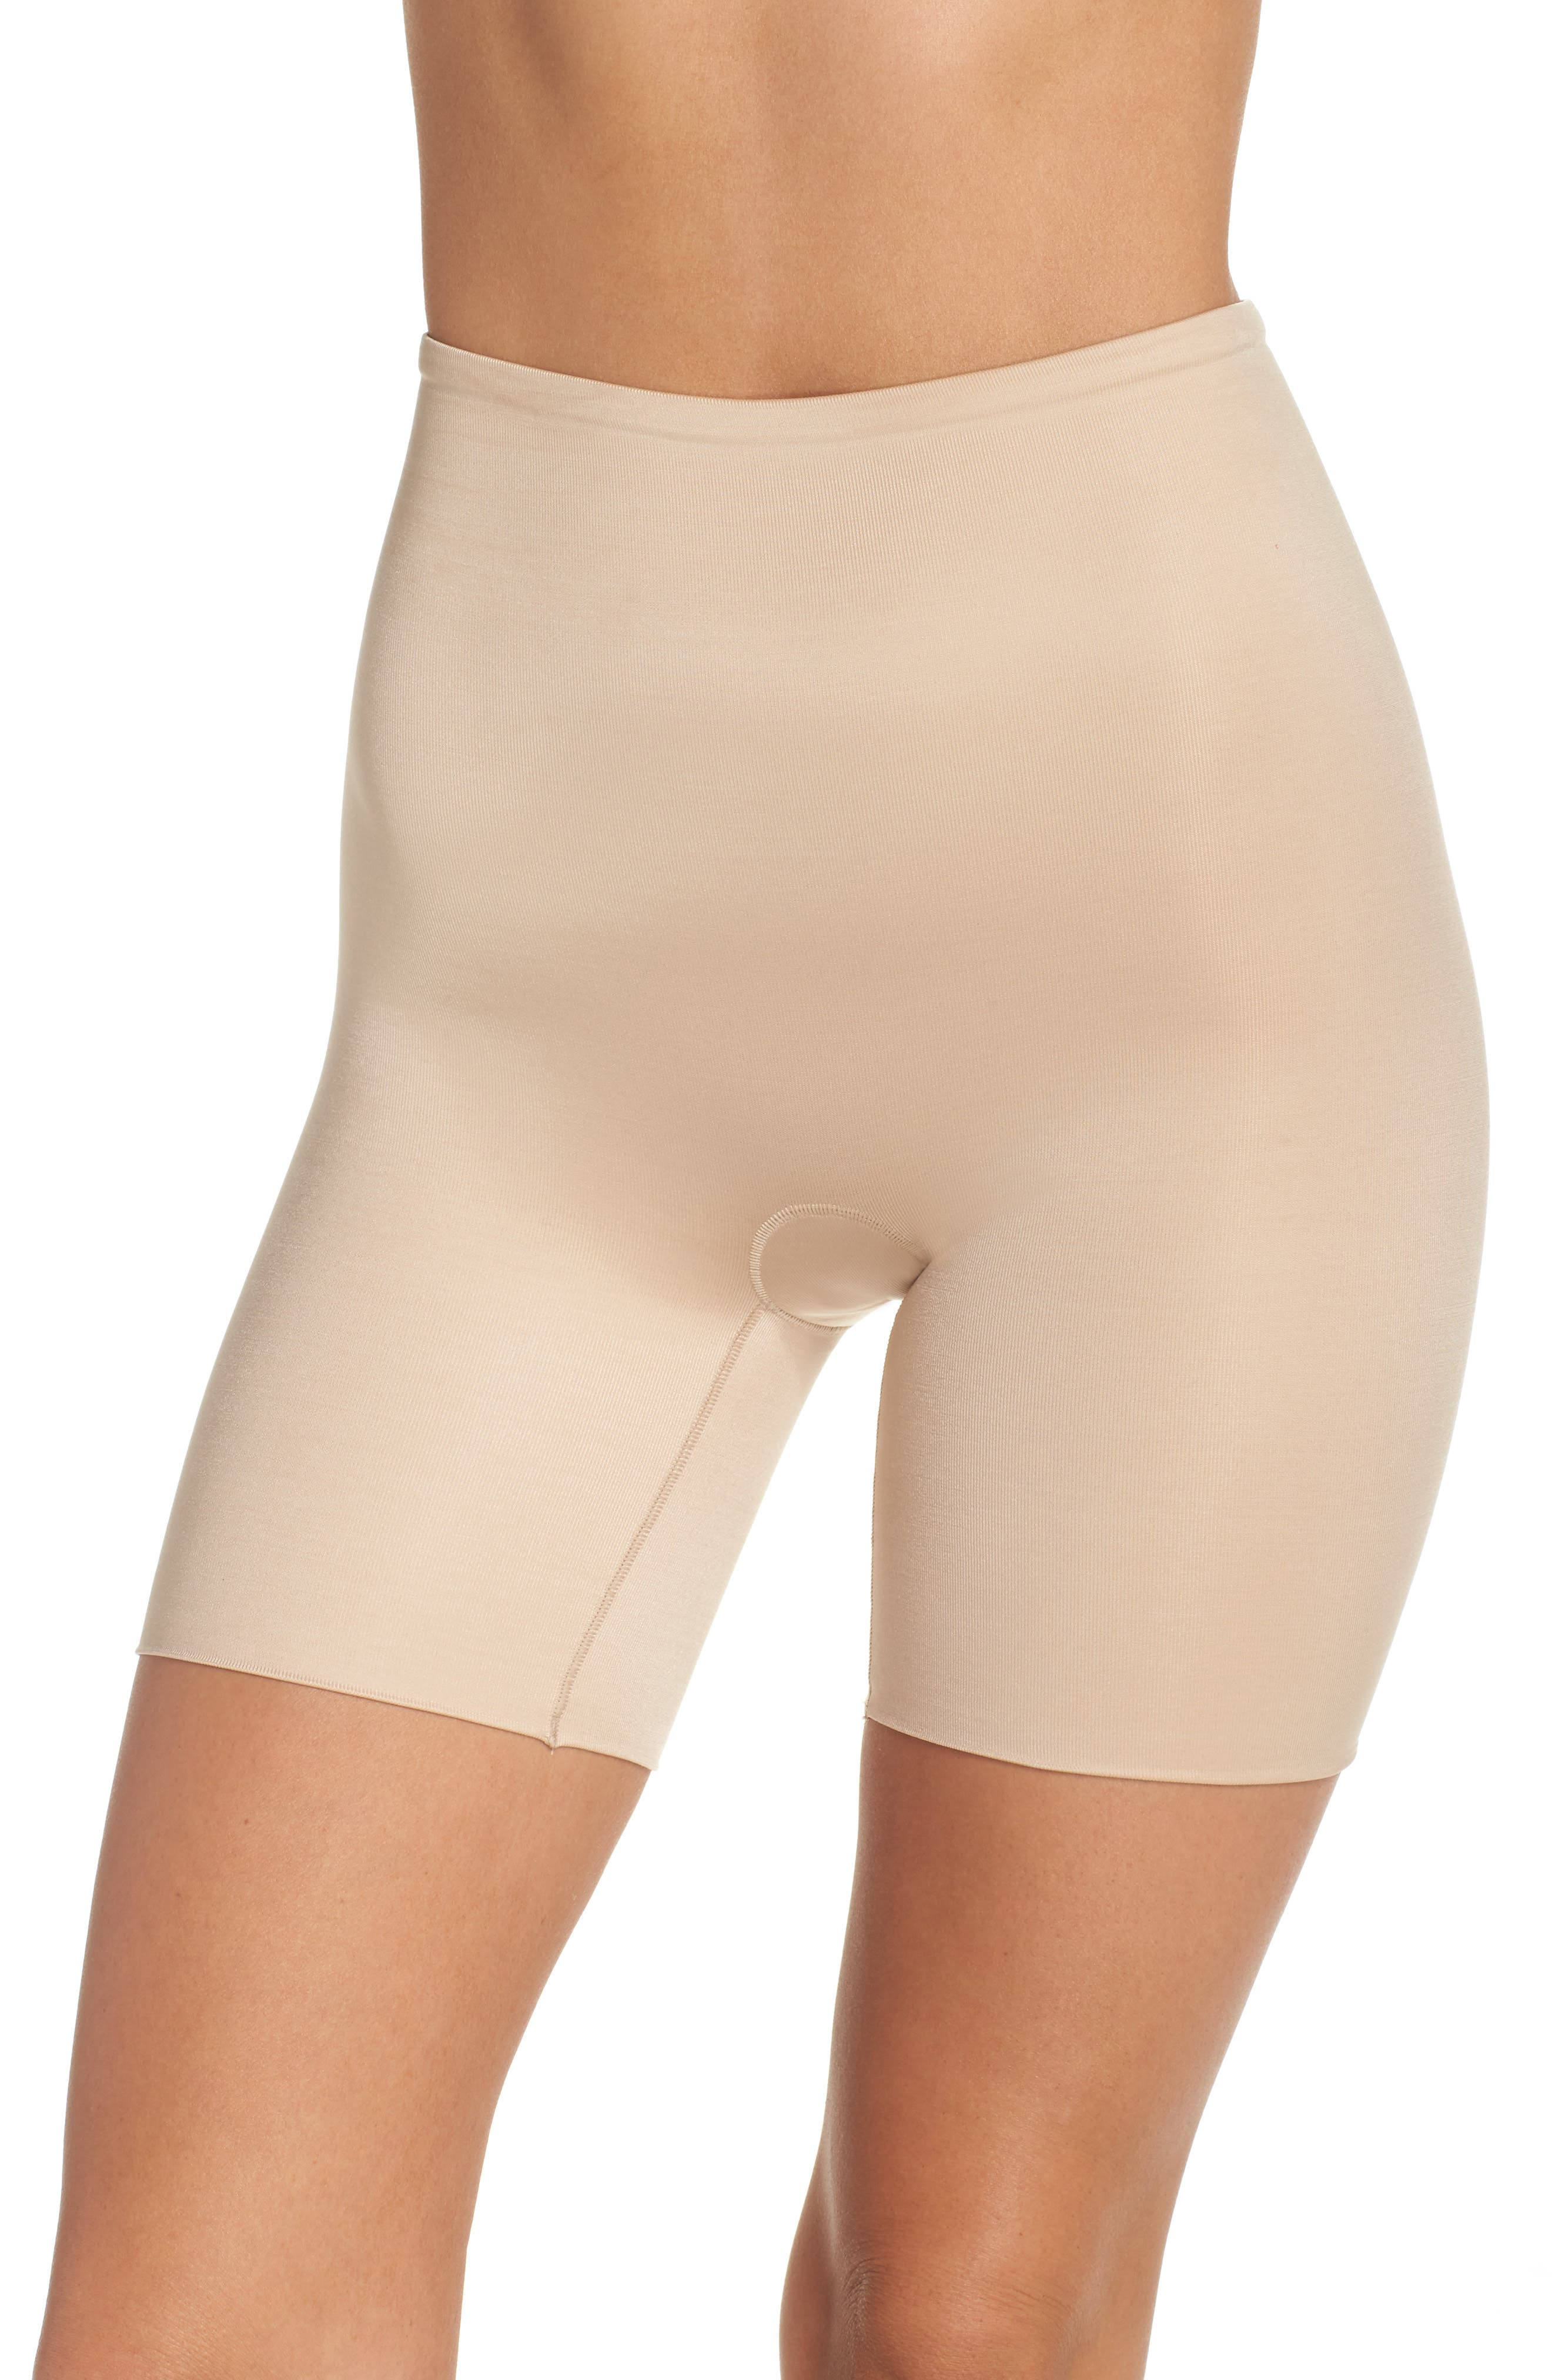 Alternate Image 1 Selected - SPANX® Power Conceal-Her Mid Thigh Shaping Shorts